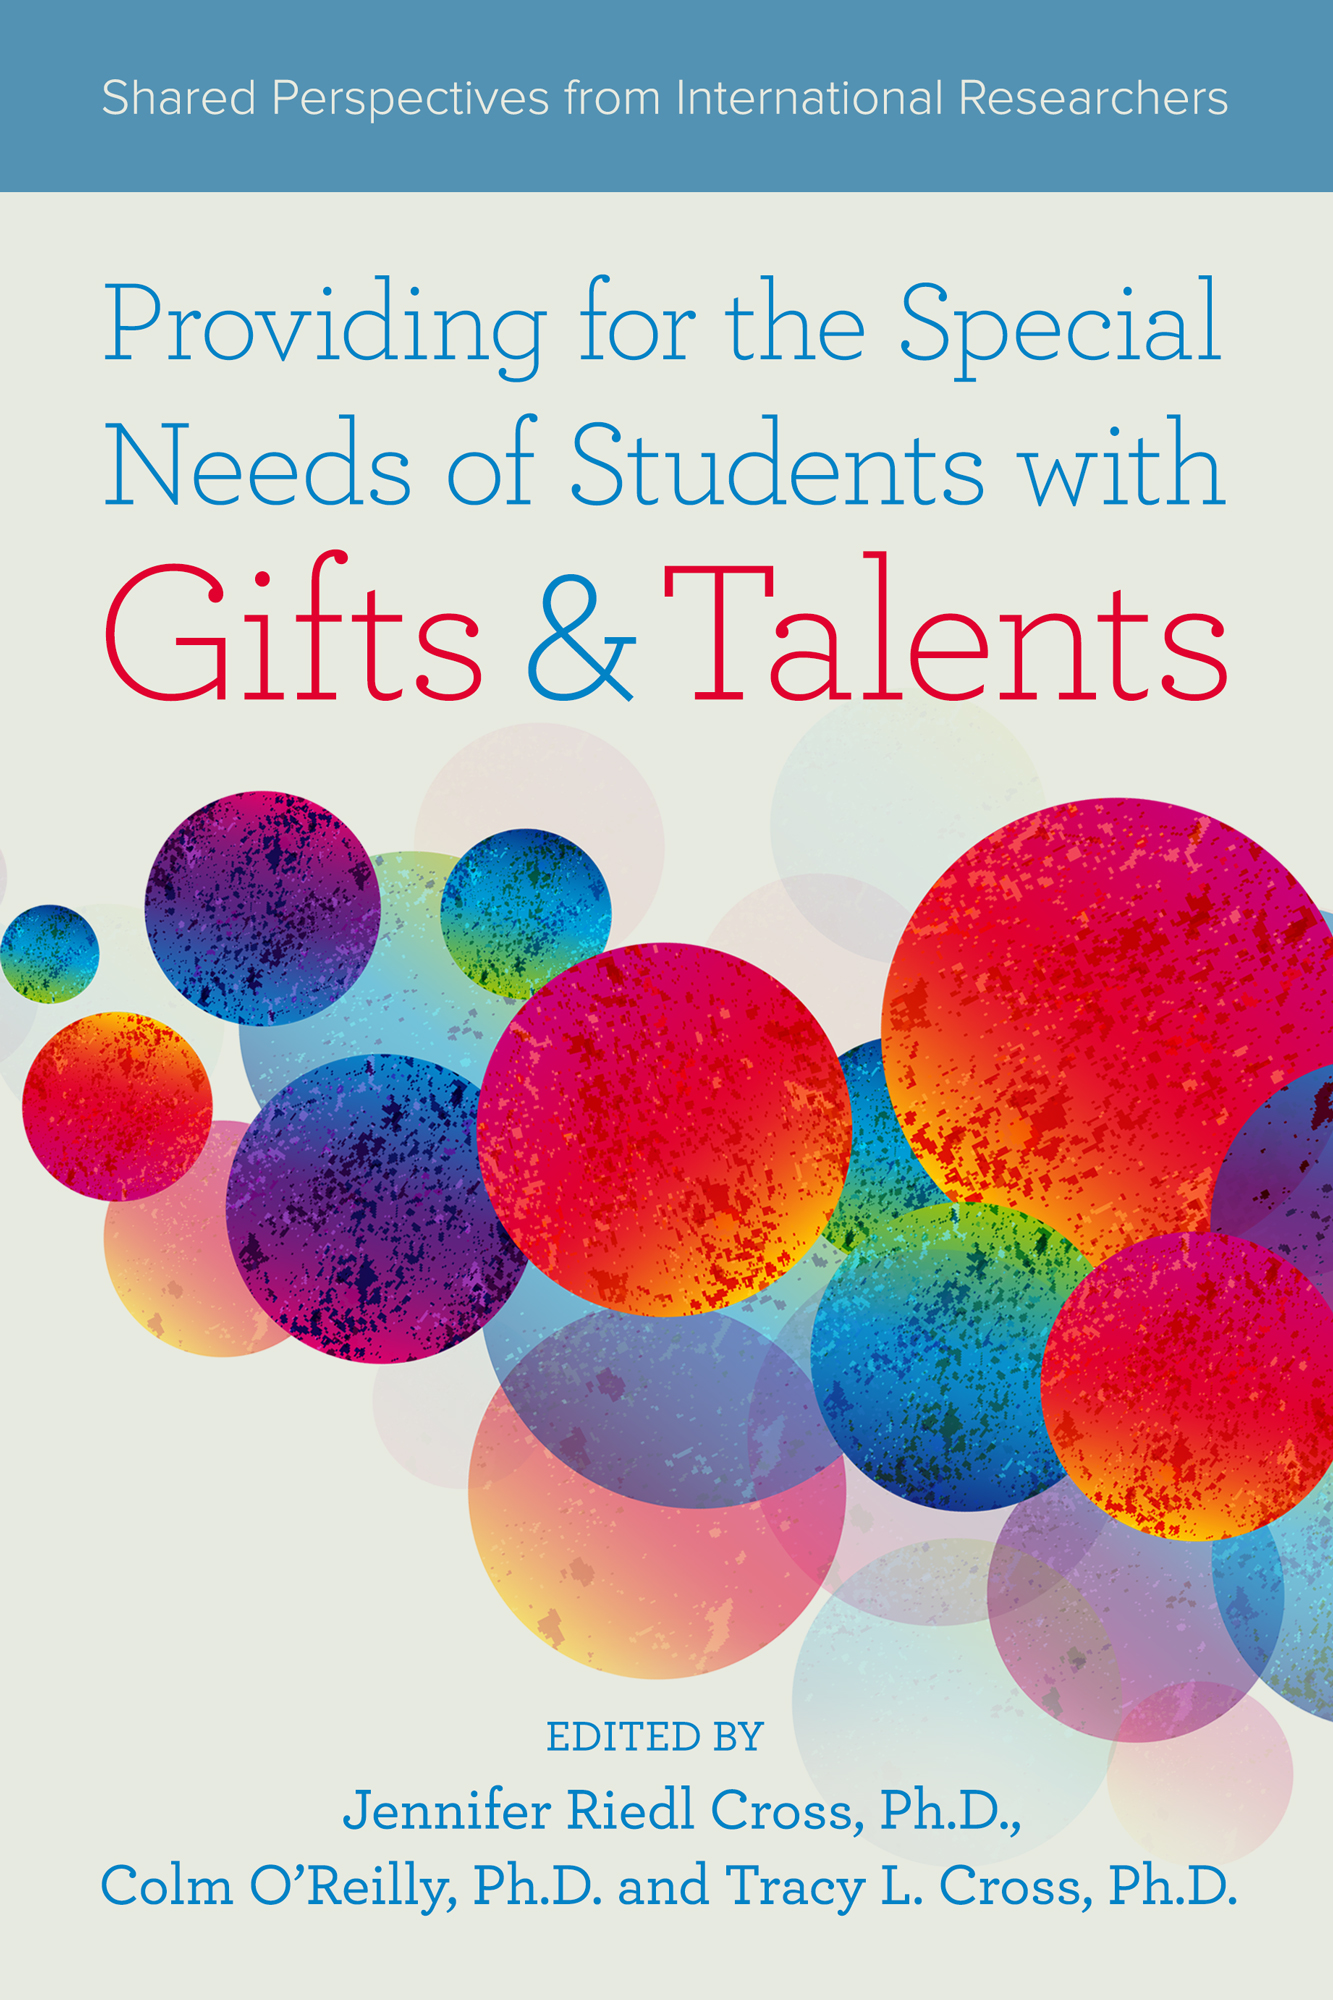 Providing for the special needs of students with gifts and talents